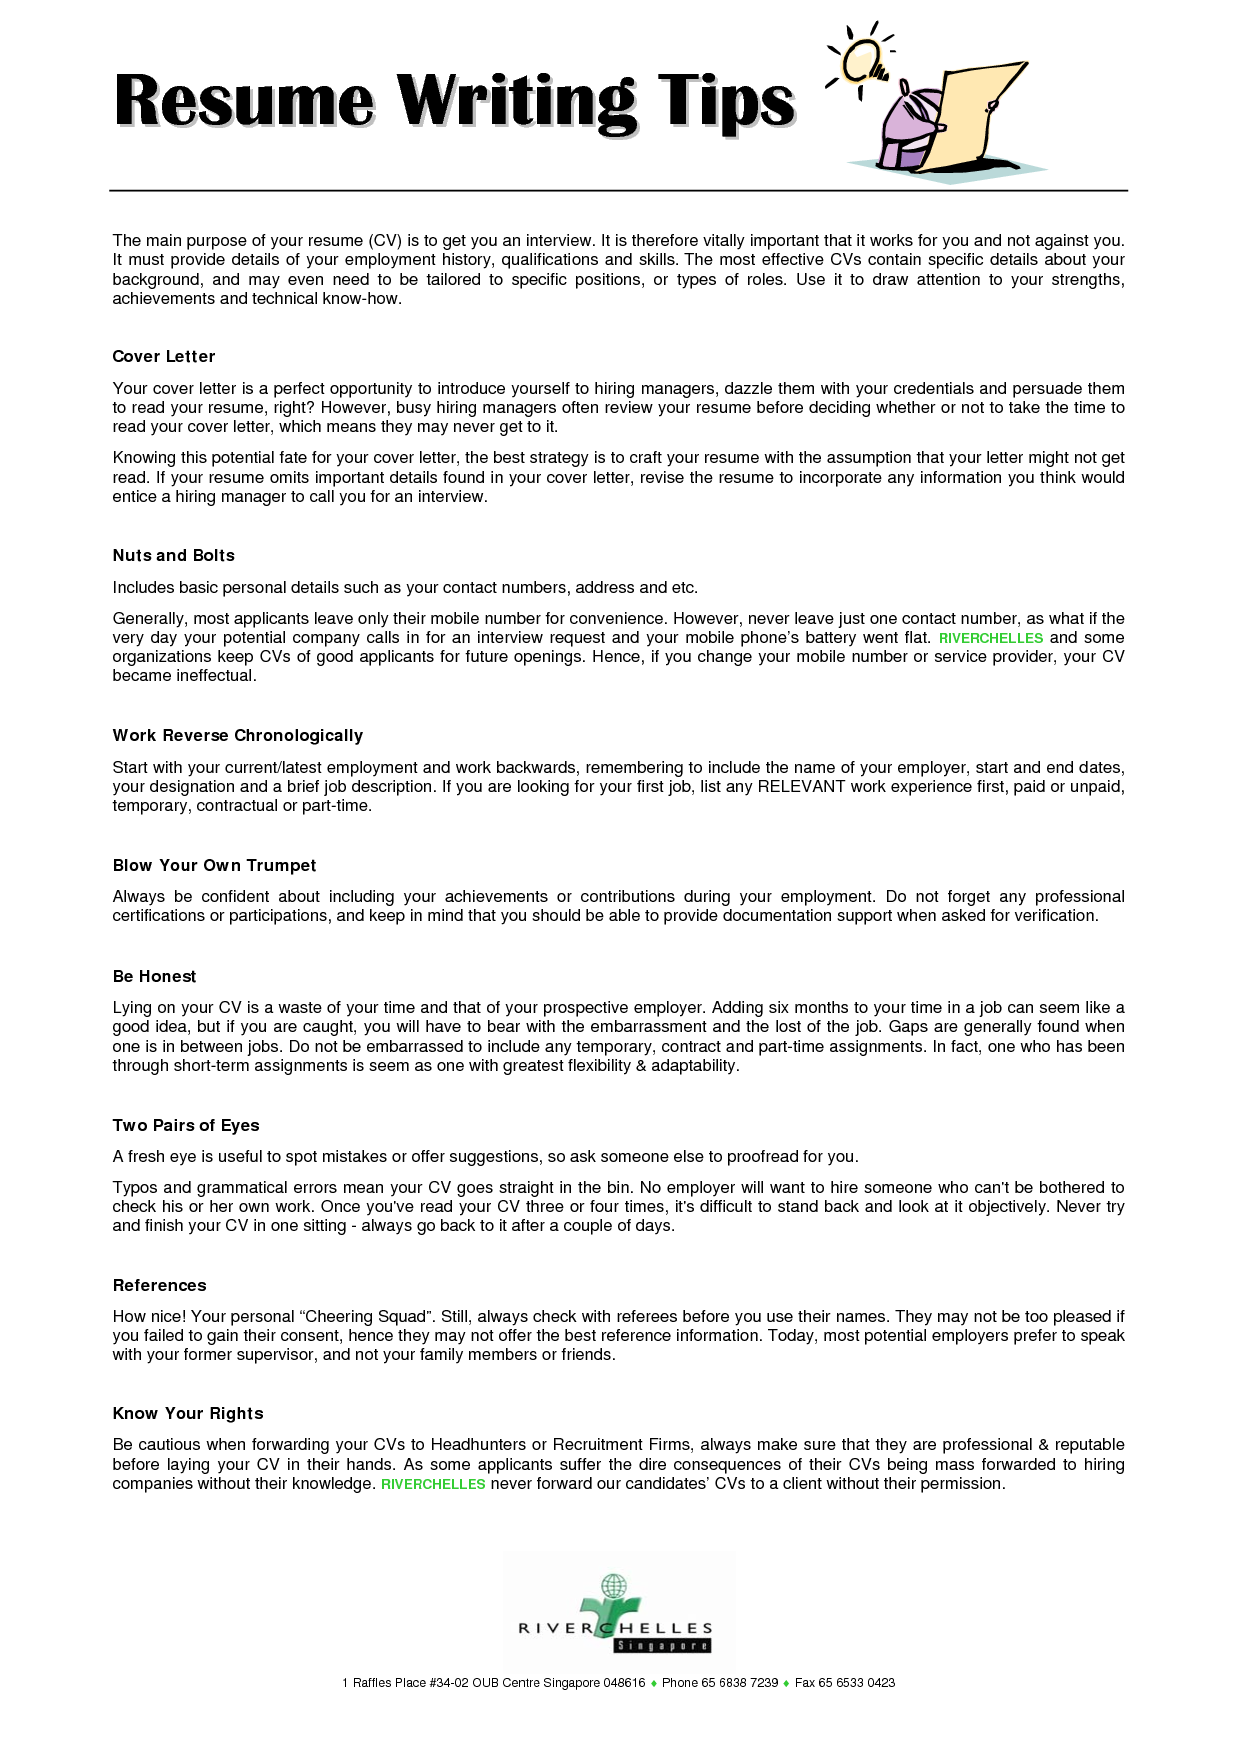 Writing A Good Resume Resume Writing Tips Resume Career Pinterest Resume